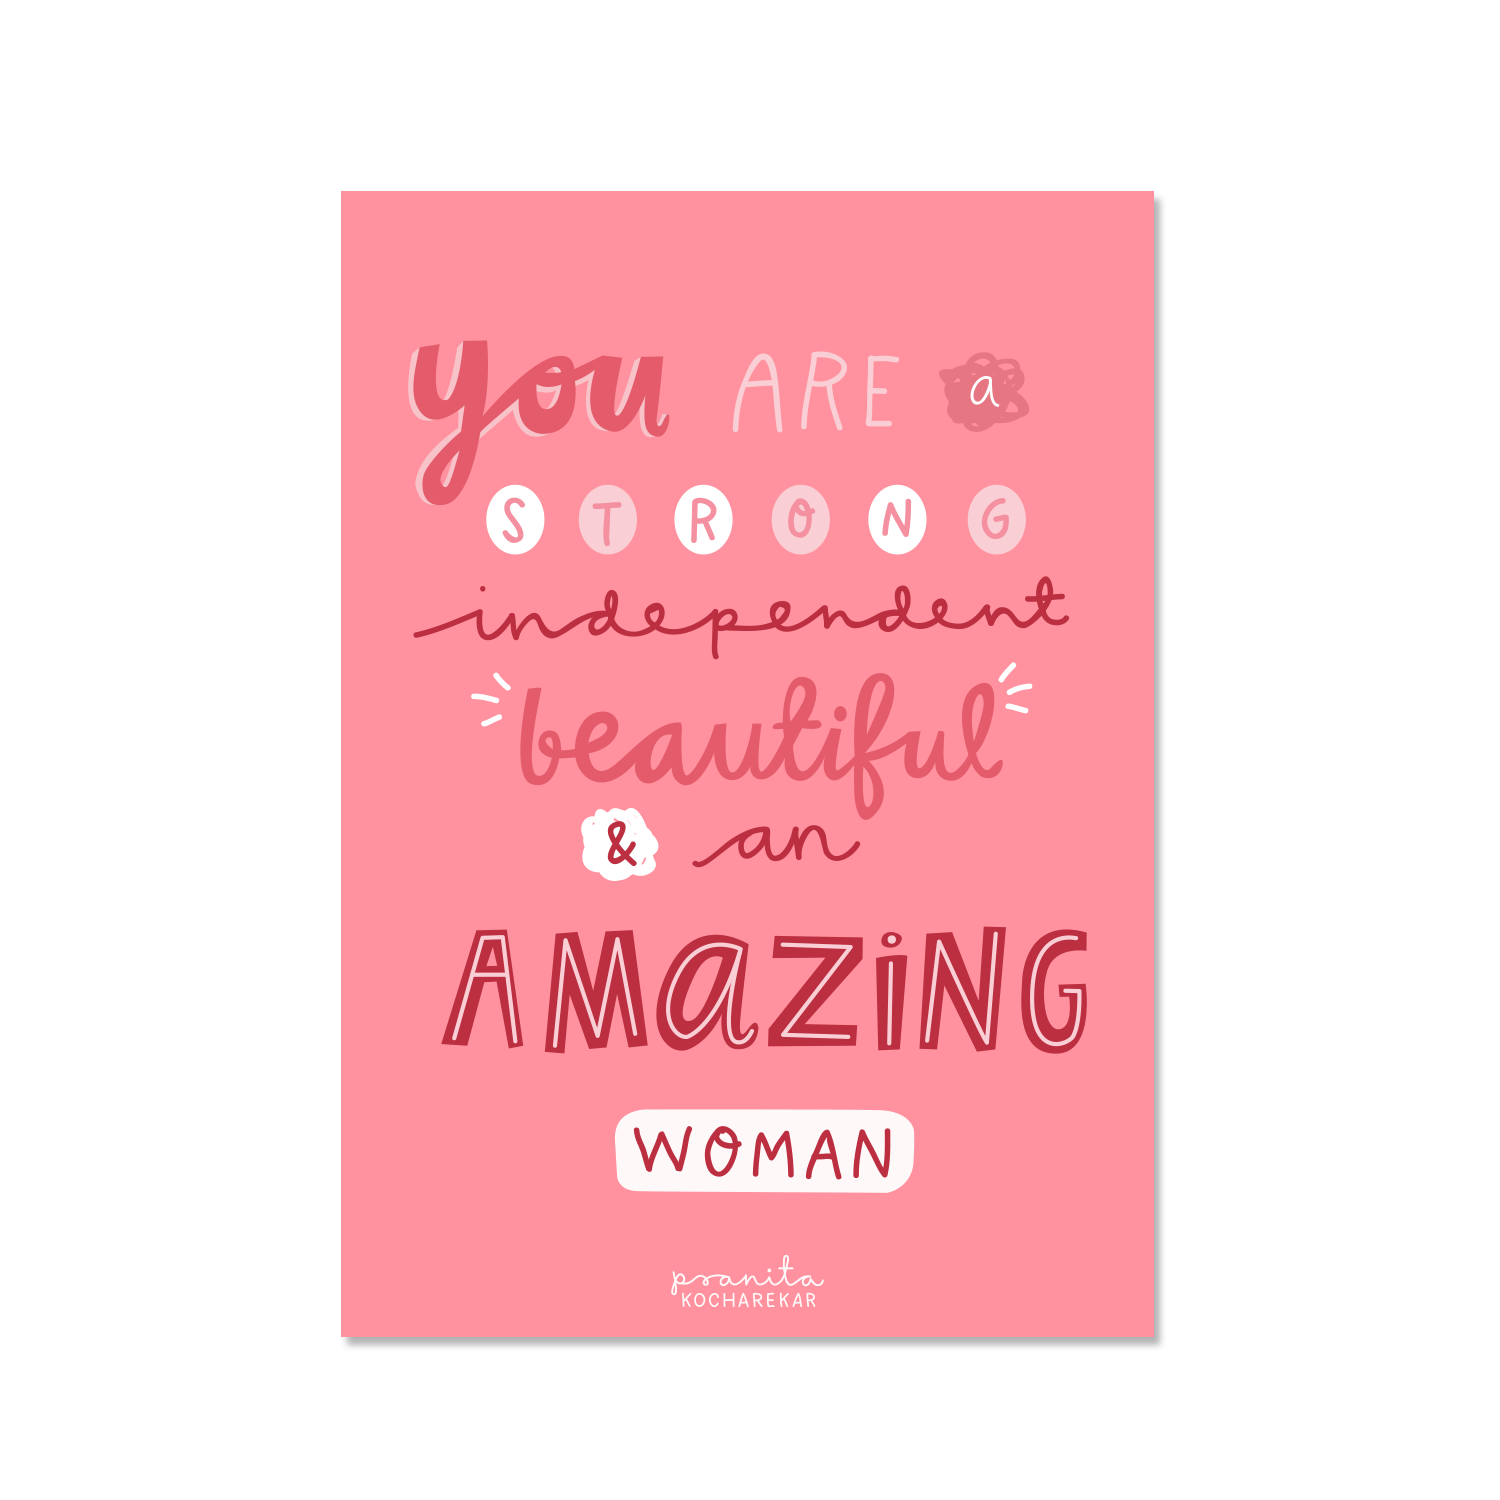 AMAZING WOMAN POSTCARD